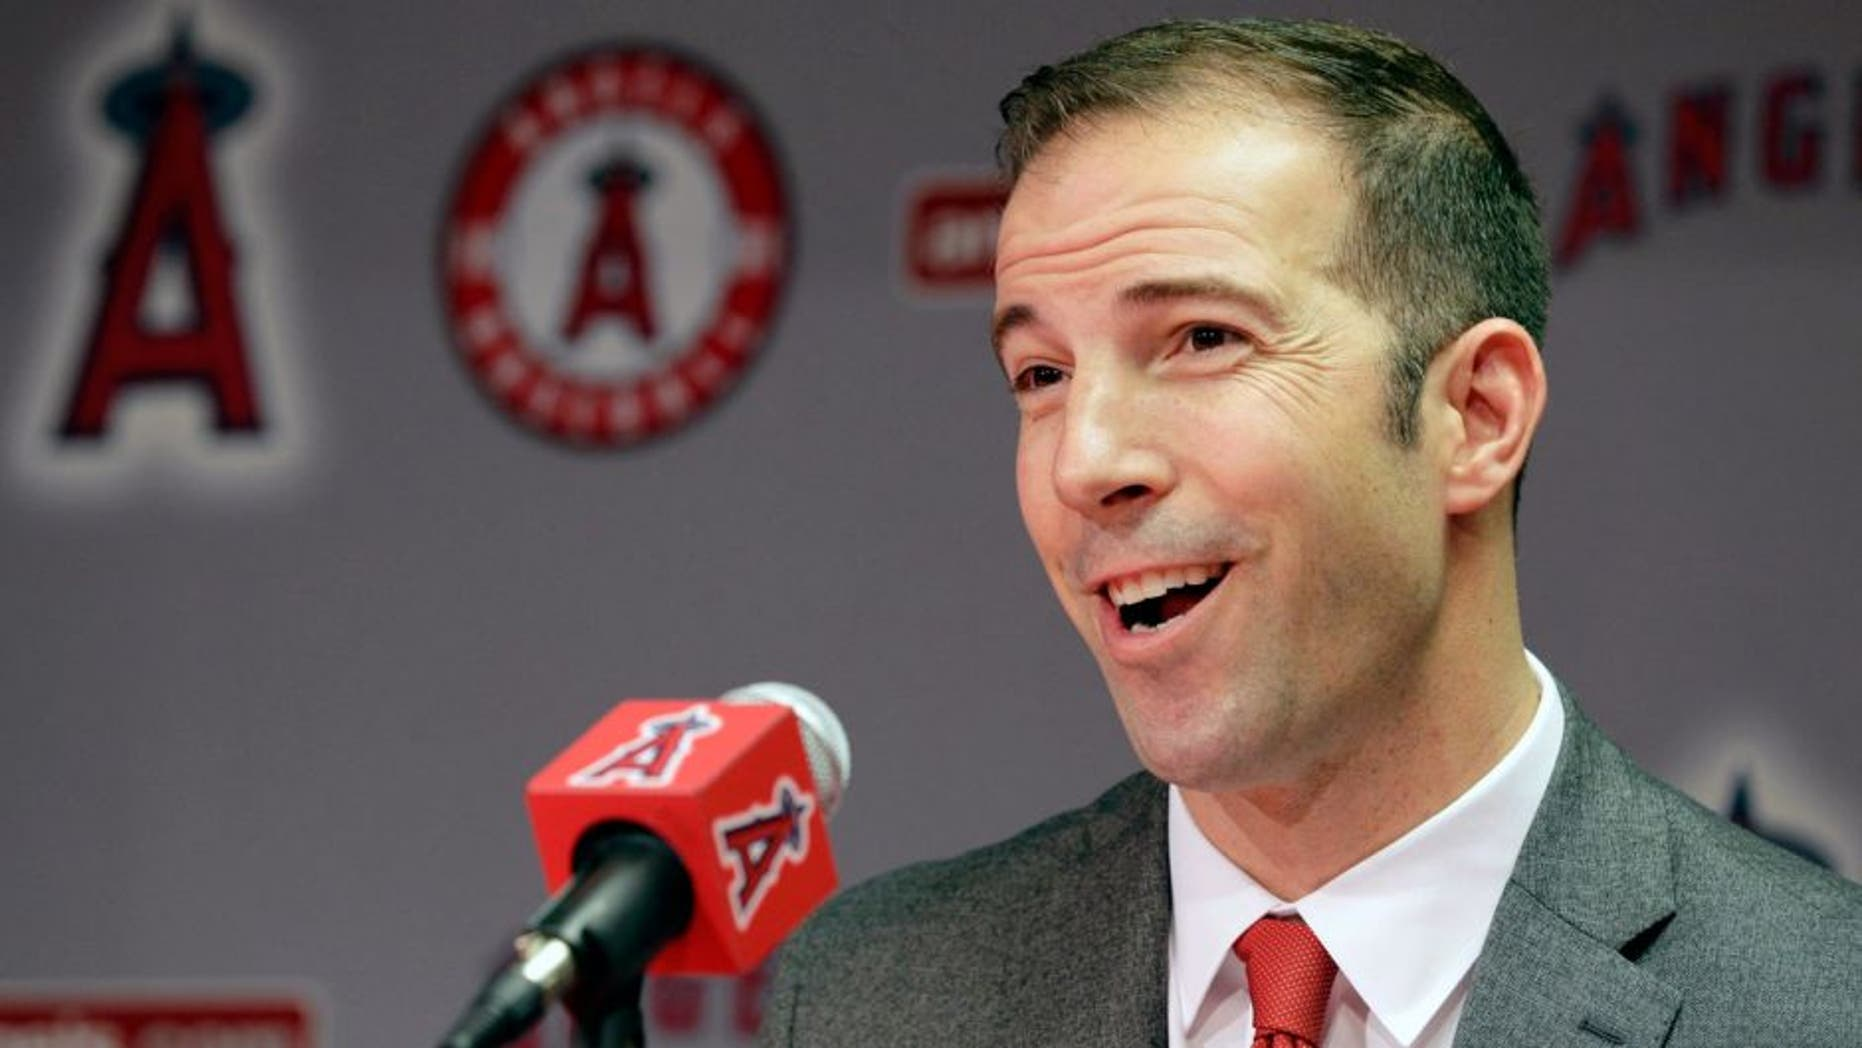 Longtime Yankees executive Billy Eppler smiles during a news conference announcing him as the new general manager for the Los Angeles Angels in Anaheim, Calif., Monday, Oct. 5, 2015. The 40-year-old Eppler replaces interim GM Bill Stoneman, who took over after Jerry Dipoto quit his job at midseason following his latest disagreement with Mike Scioscia, the longest-serving manager in baseball. (AP Photo/Nick Ut)